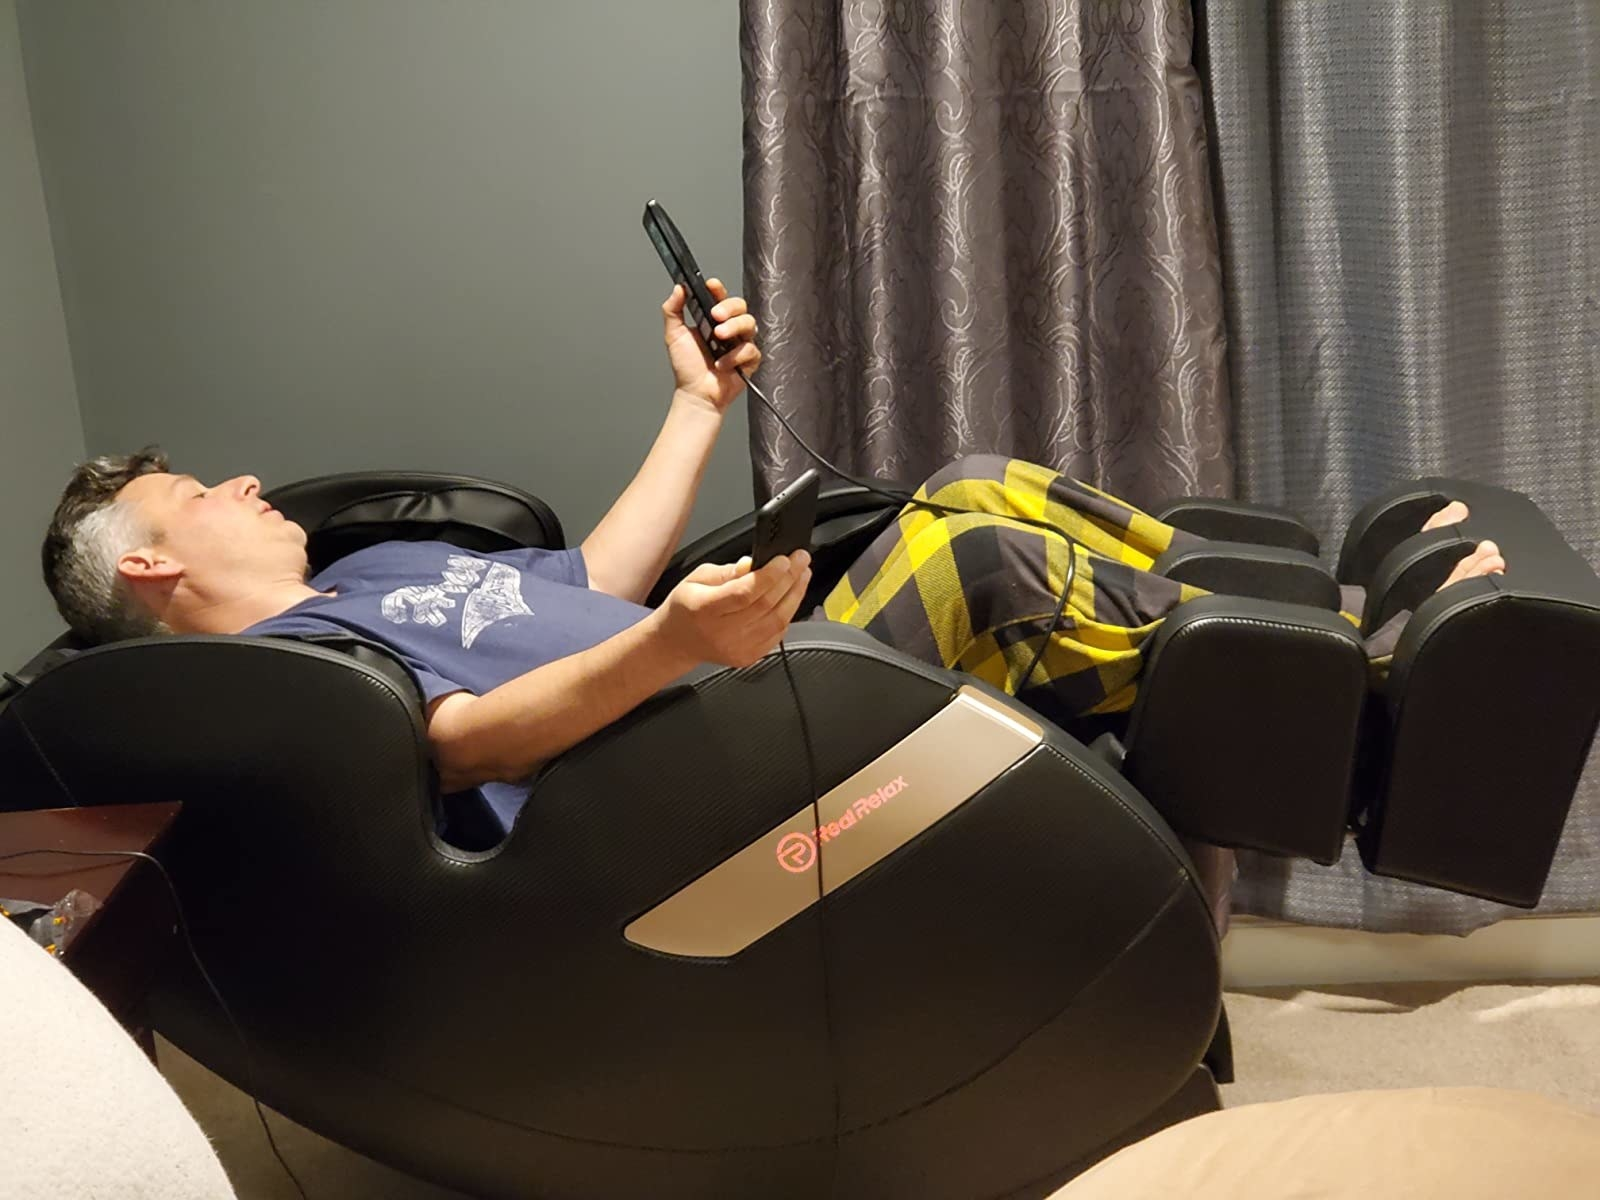 Reviewer relaxes and reclines in the chair